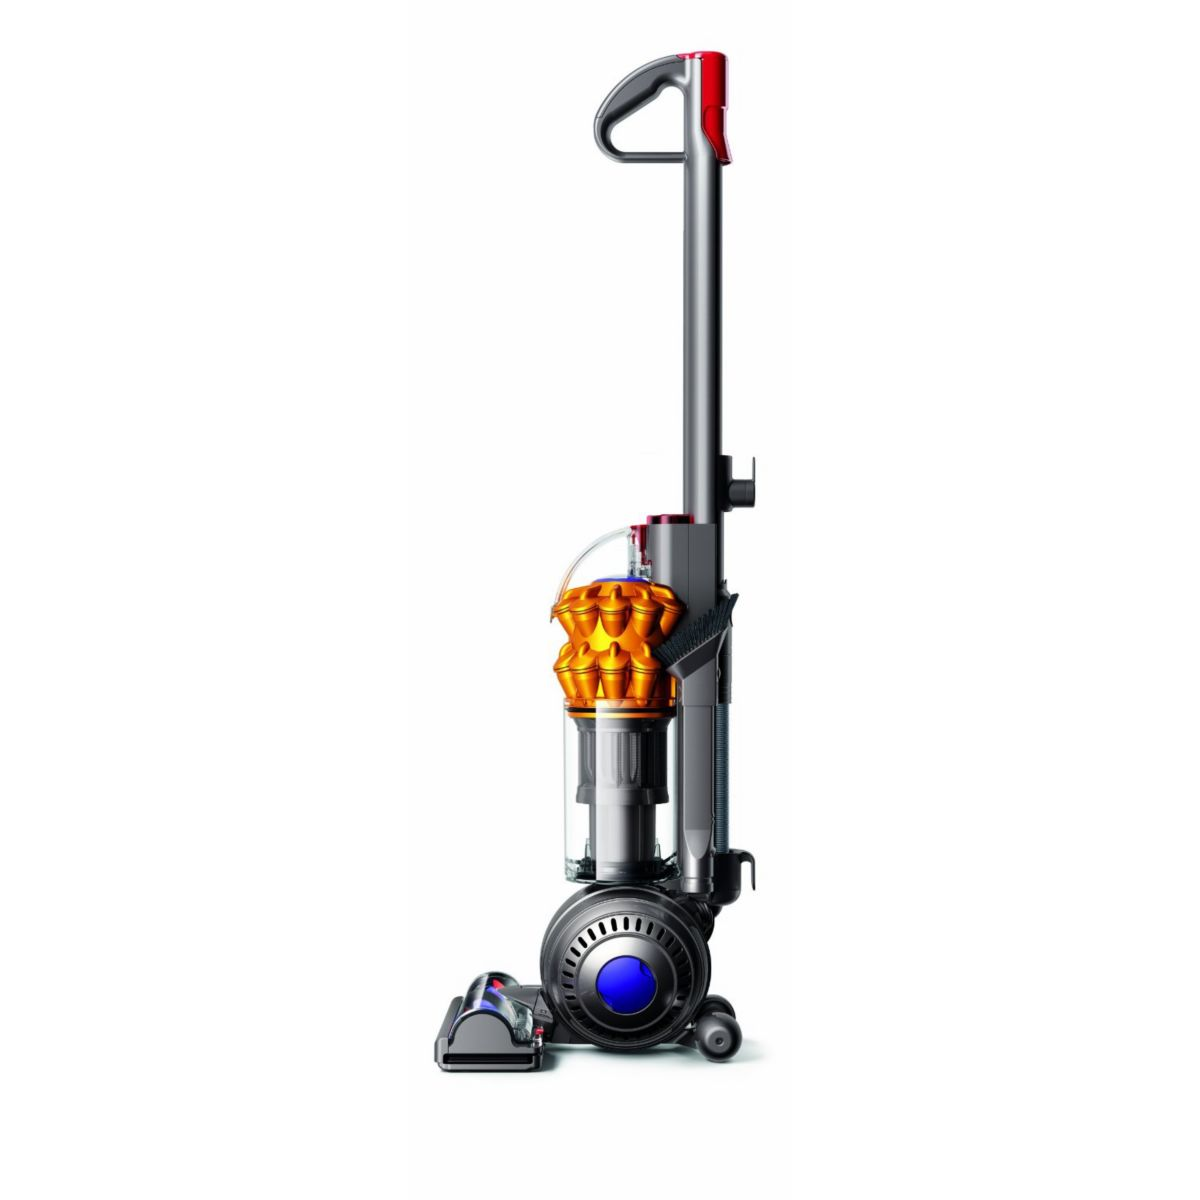 dyson dc51 multi floor aspirateur brosseur sans sac comparer avec. Black Bedroom Furniture Sets. Home Design Ideas